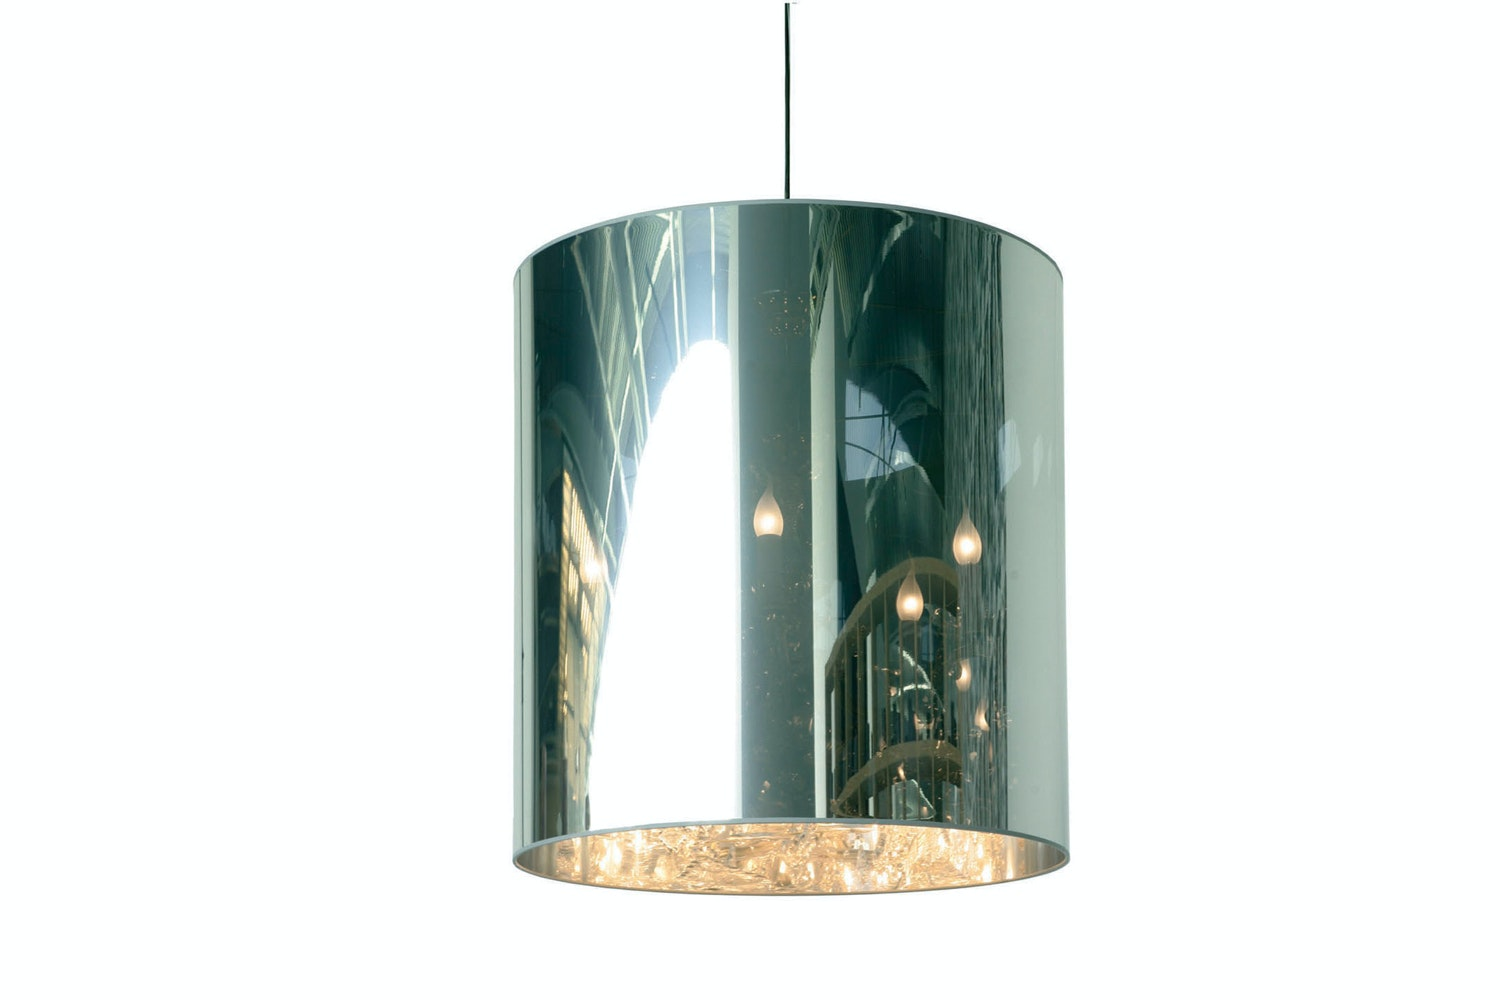 Light Shade Shade Suspension Lamp by Jurgen Bey for Moooi